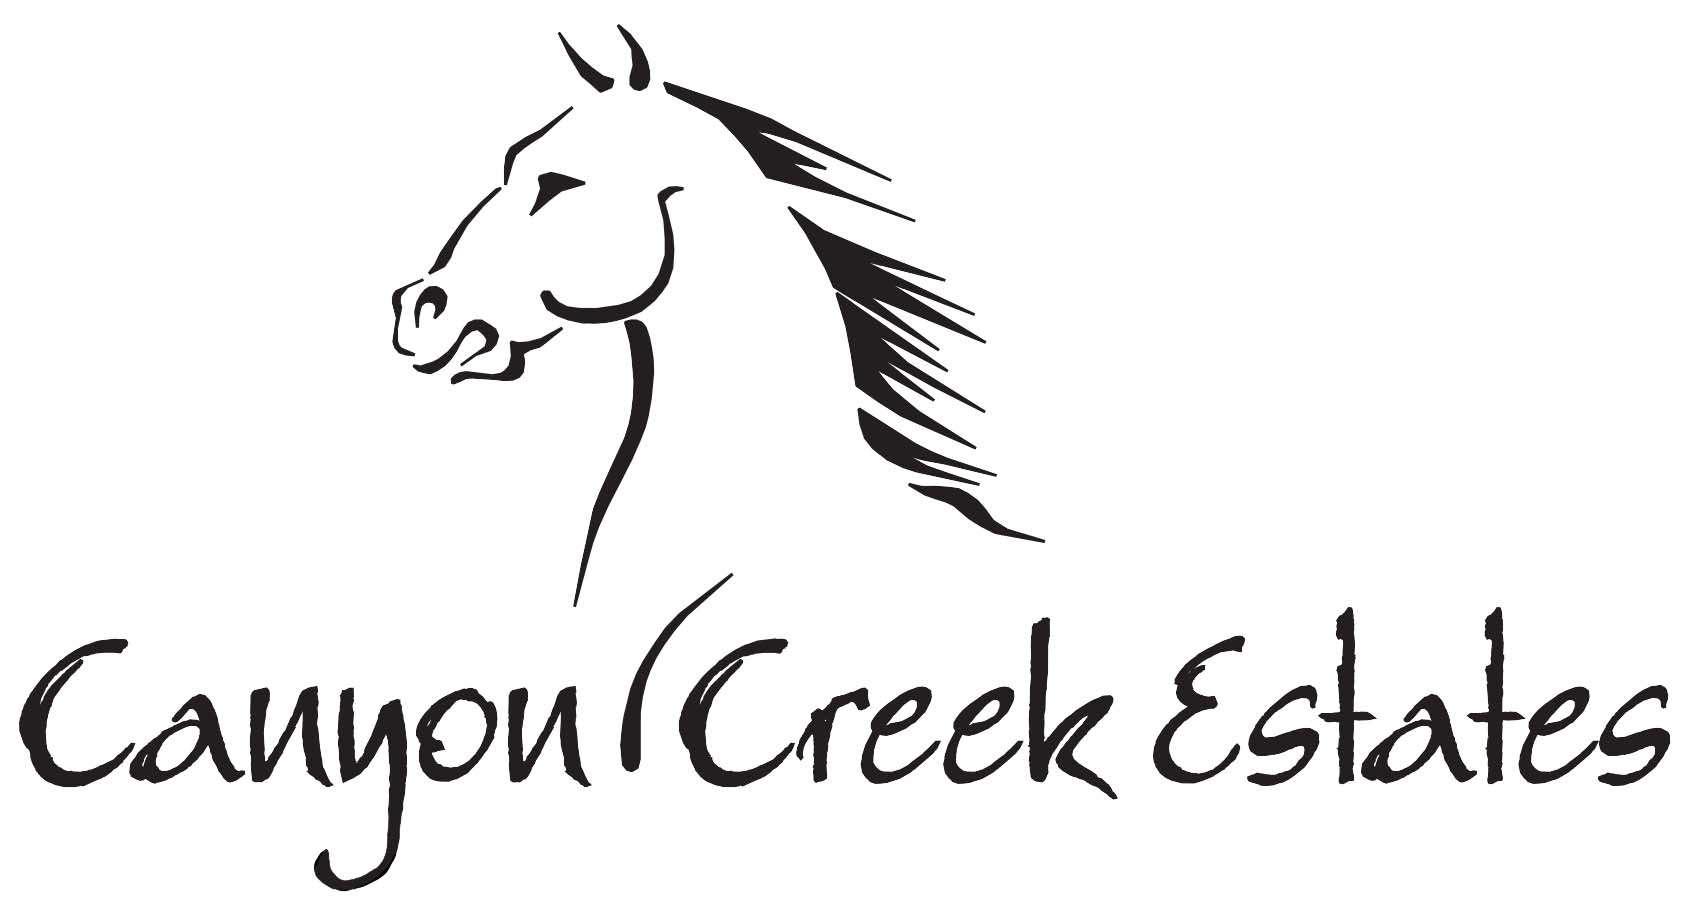 Canyon Creek Estates